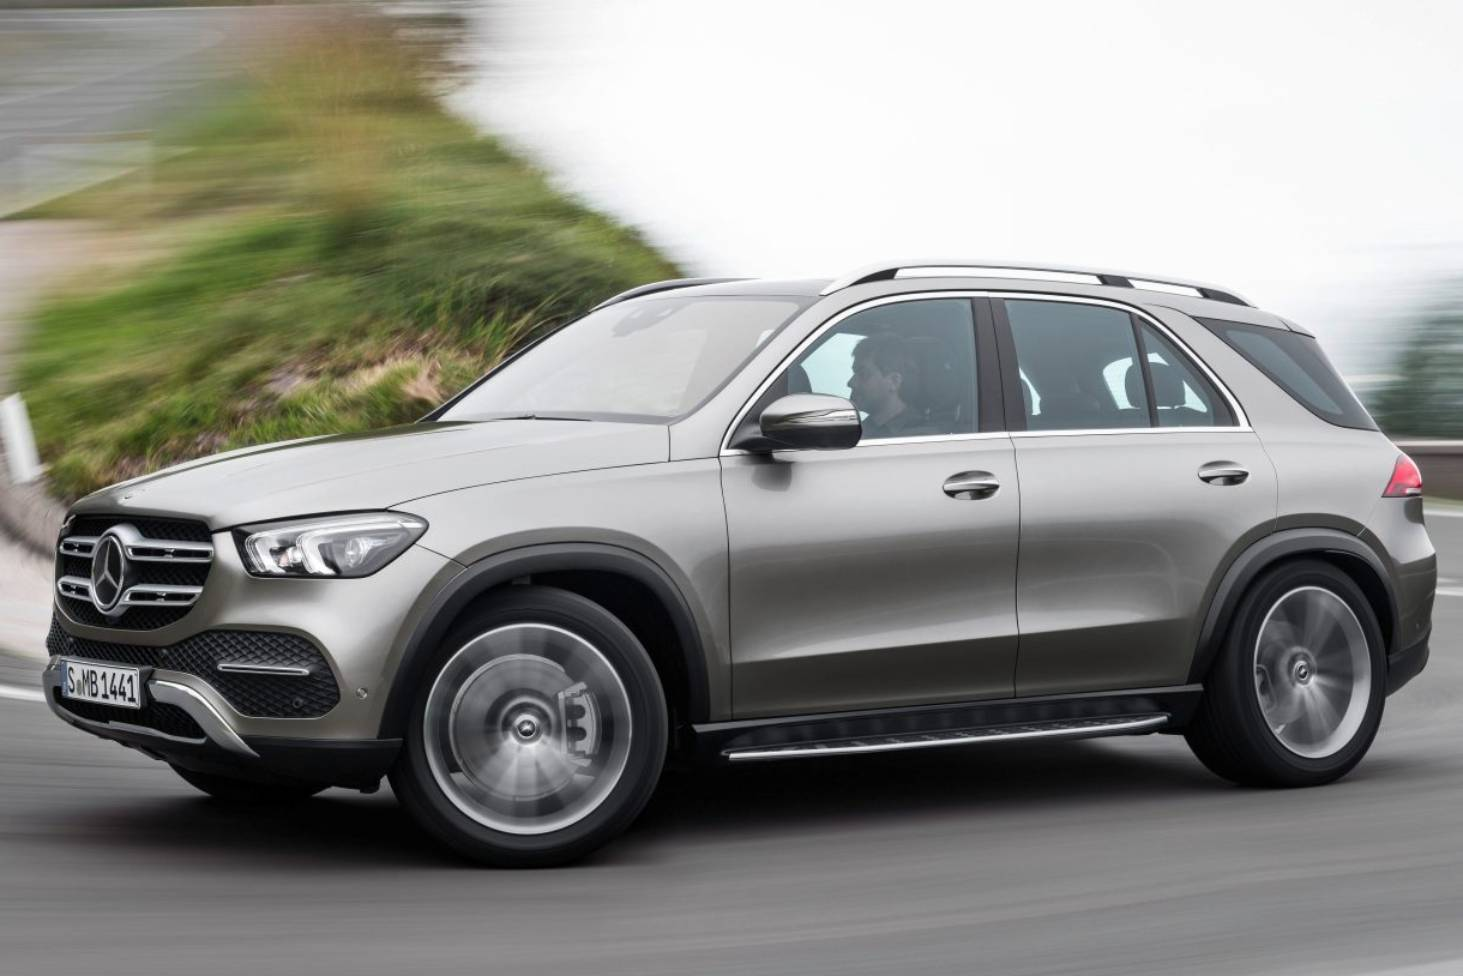 Mercedes Benz Has Tripled The Range Of Its Plug In Hybrid Gle Suv